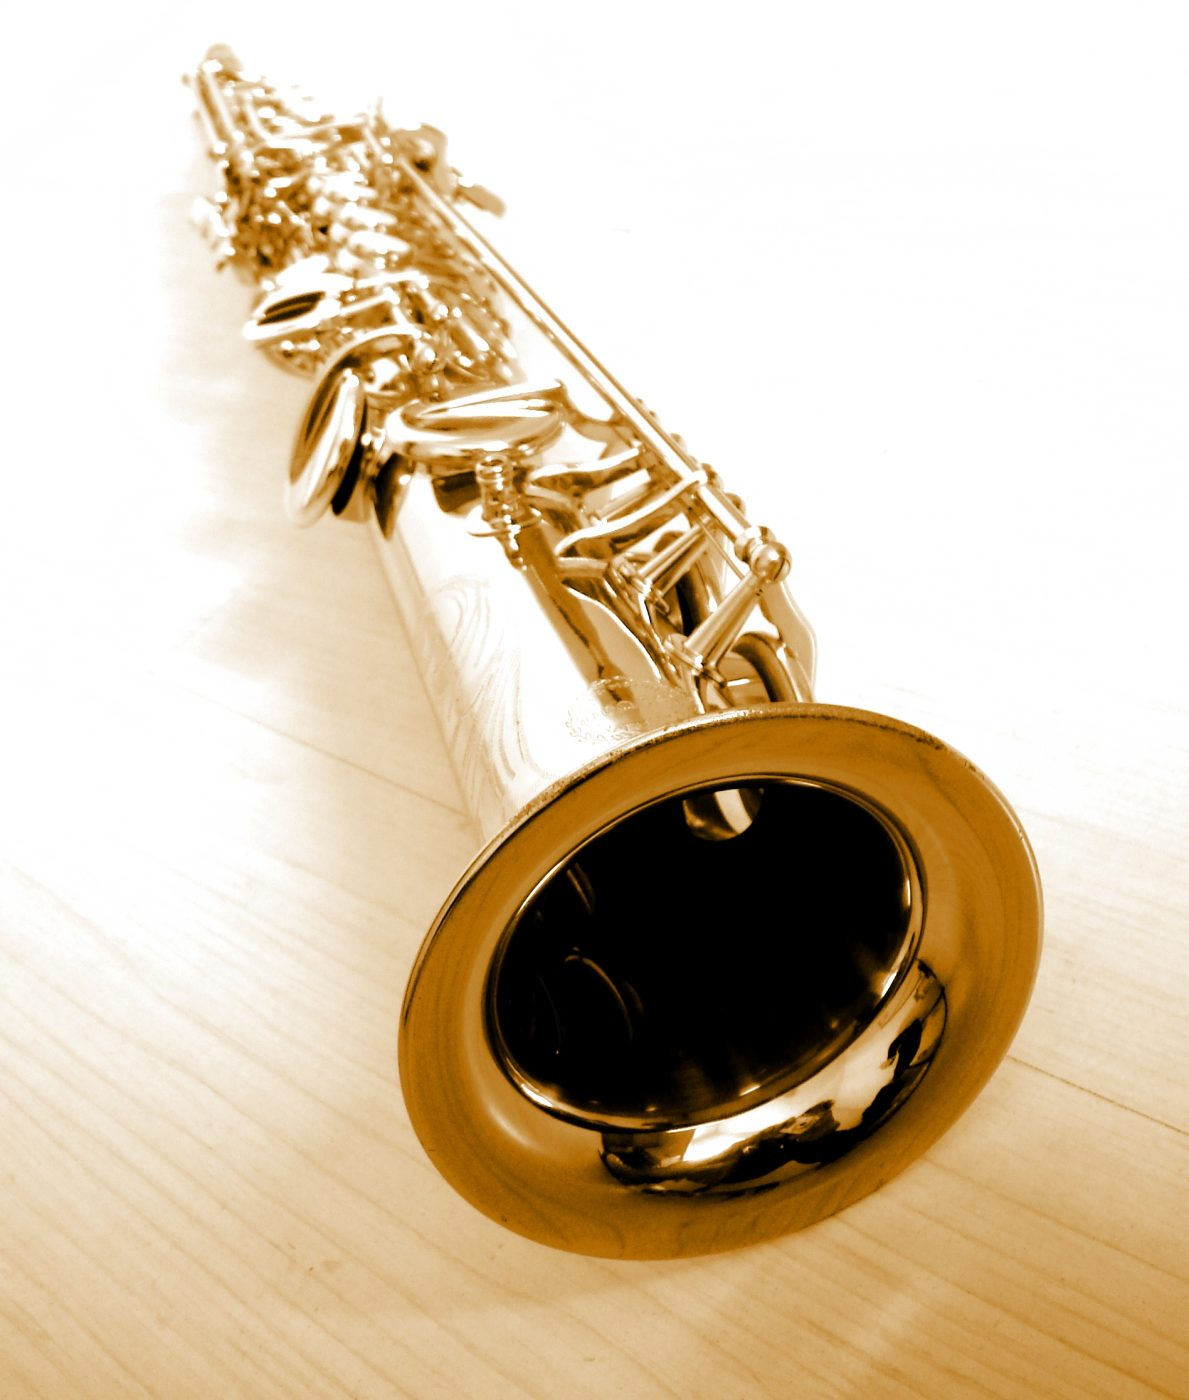 saxophone-1416830, freeimages, by Nelson NY